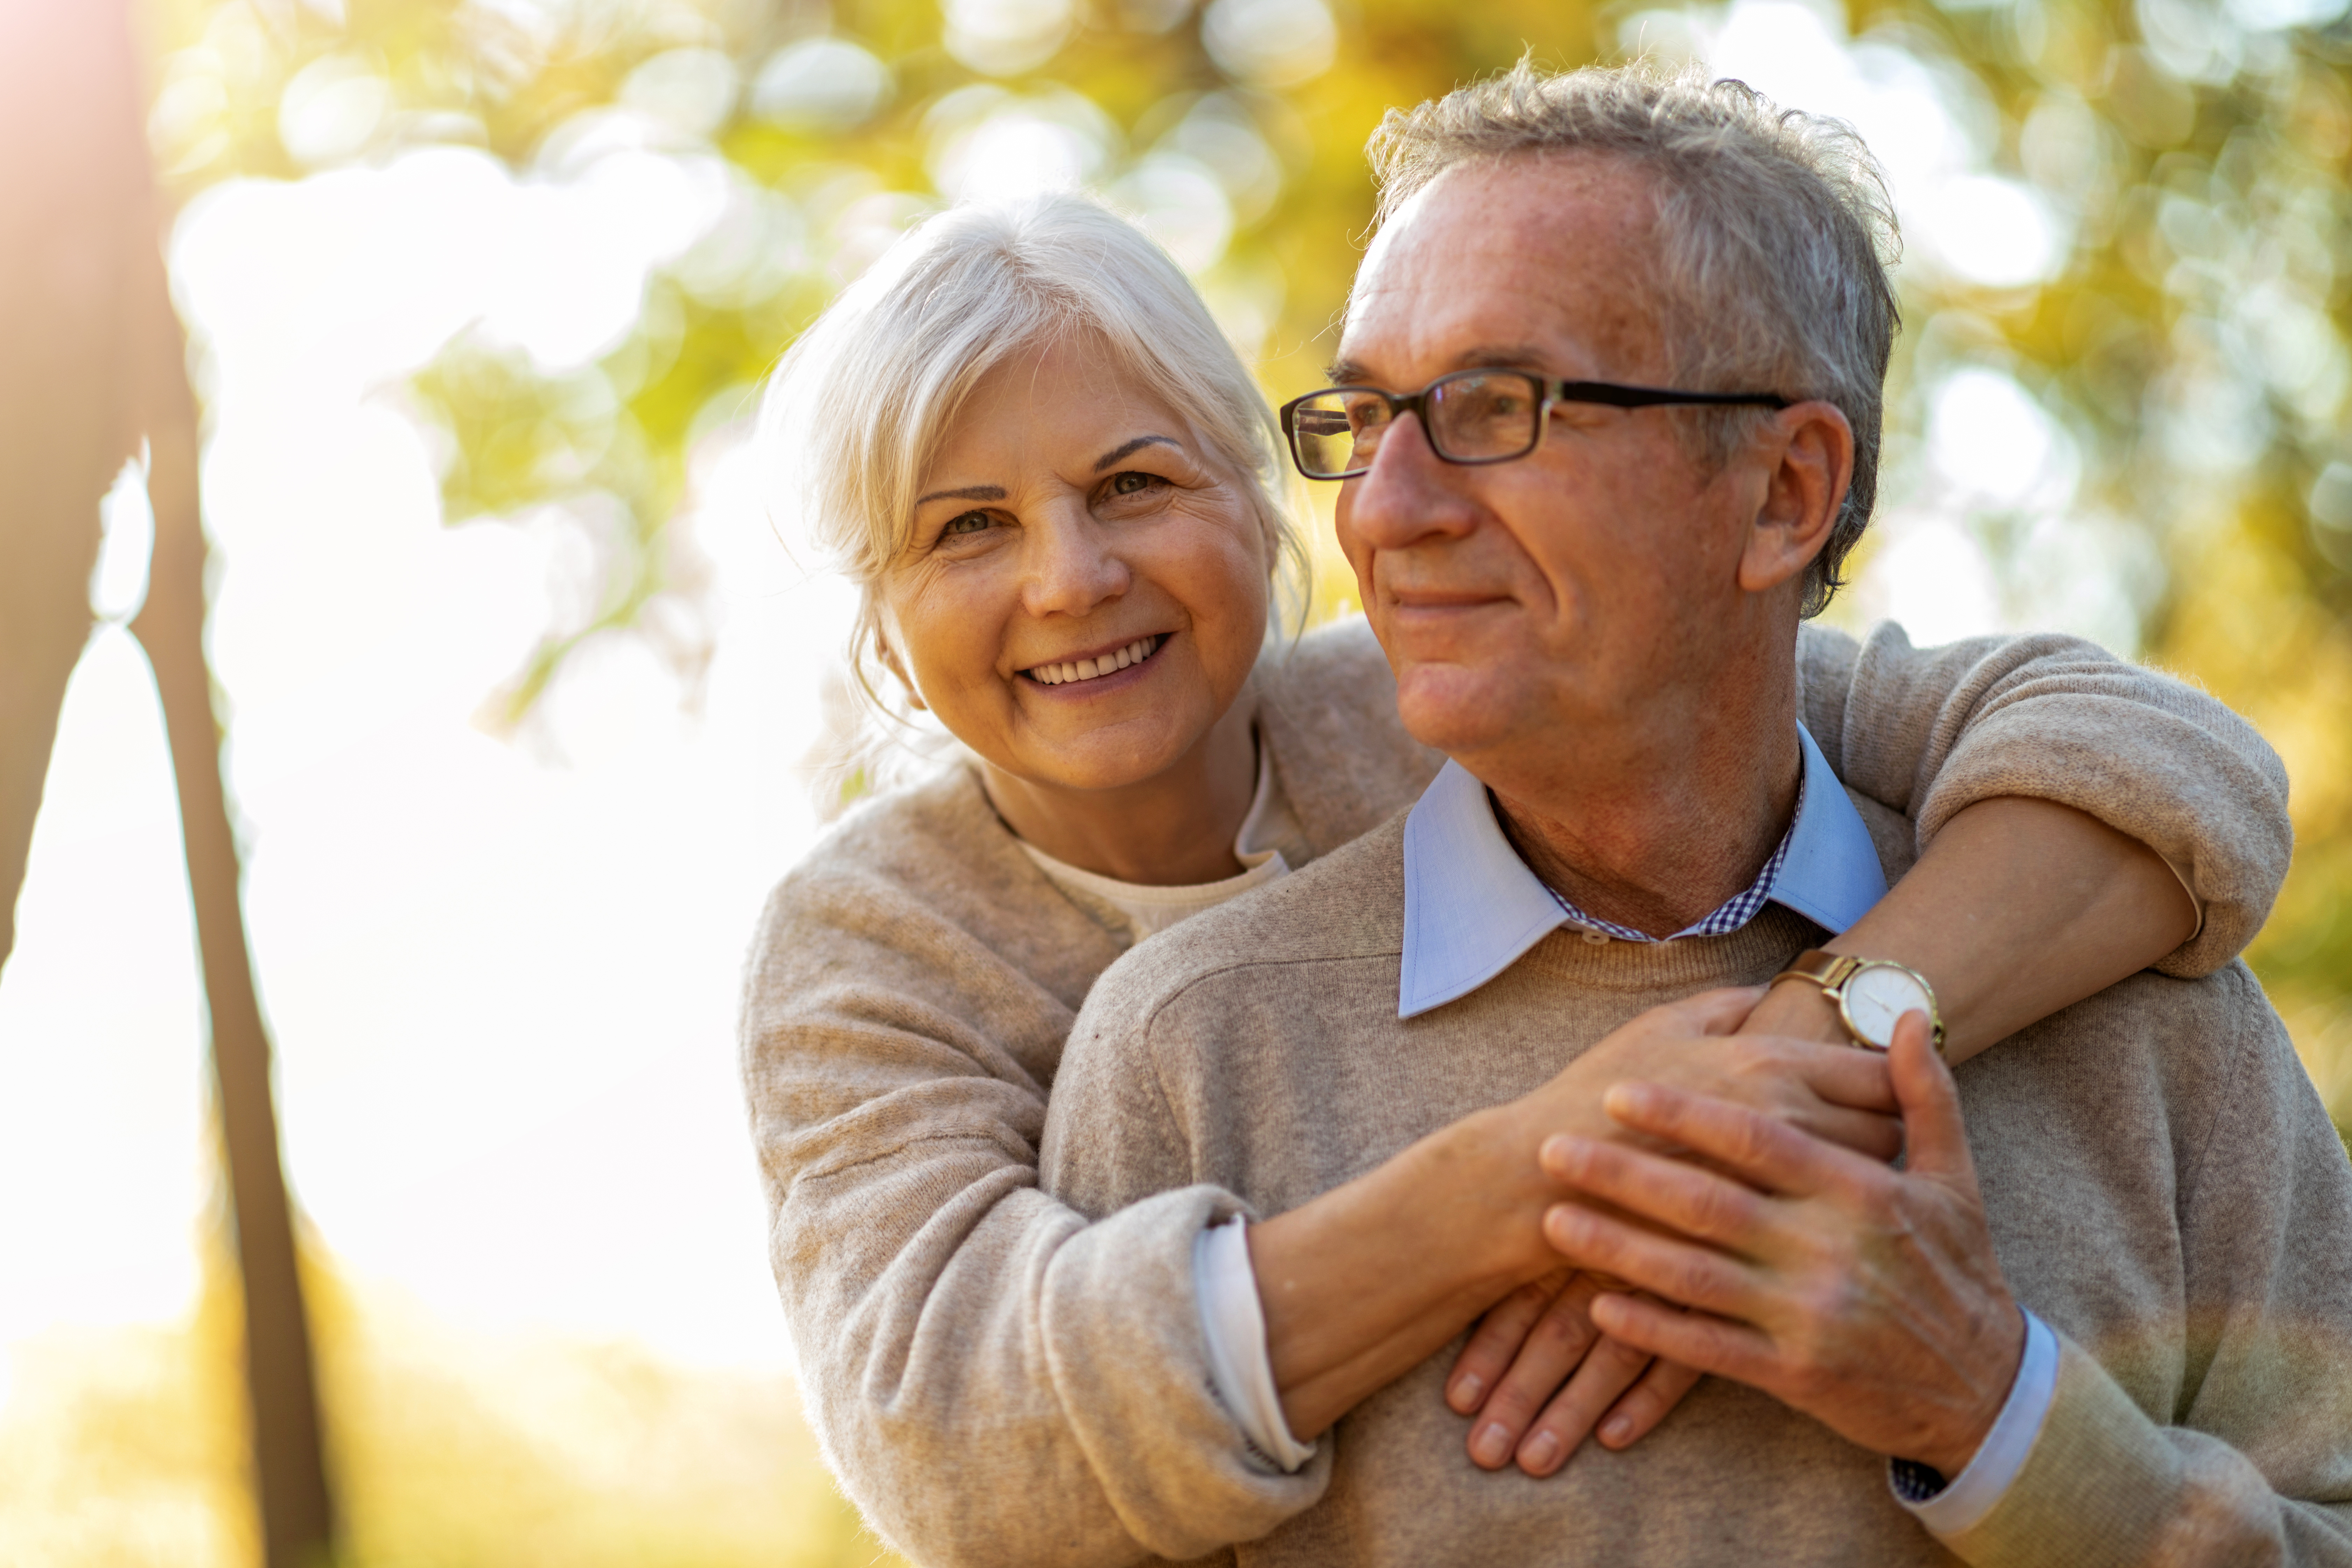 How to Maintain Health at Any Age in Honor of Healthy Aging Month